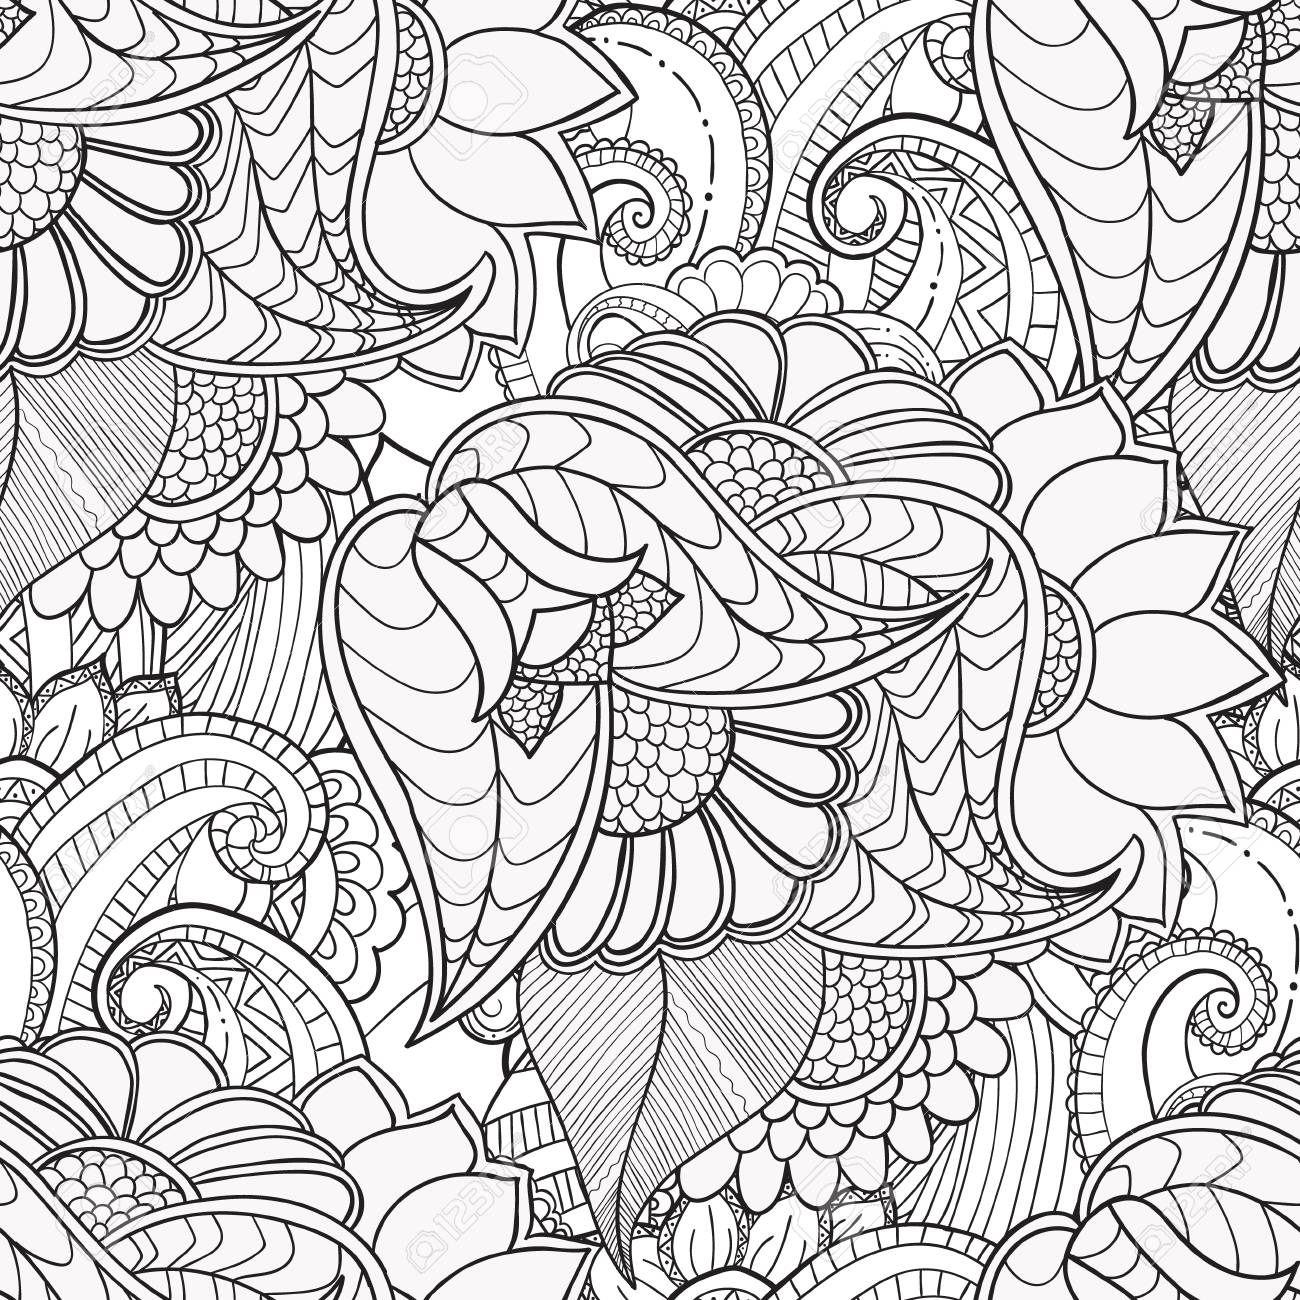 Hand Drawn Artistic Ethnic Ornamental Patterned Floral Frame In Doodle Zentangle Style For Adult Coloring